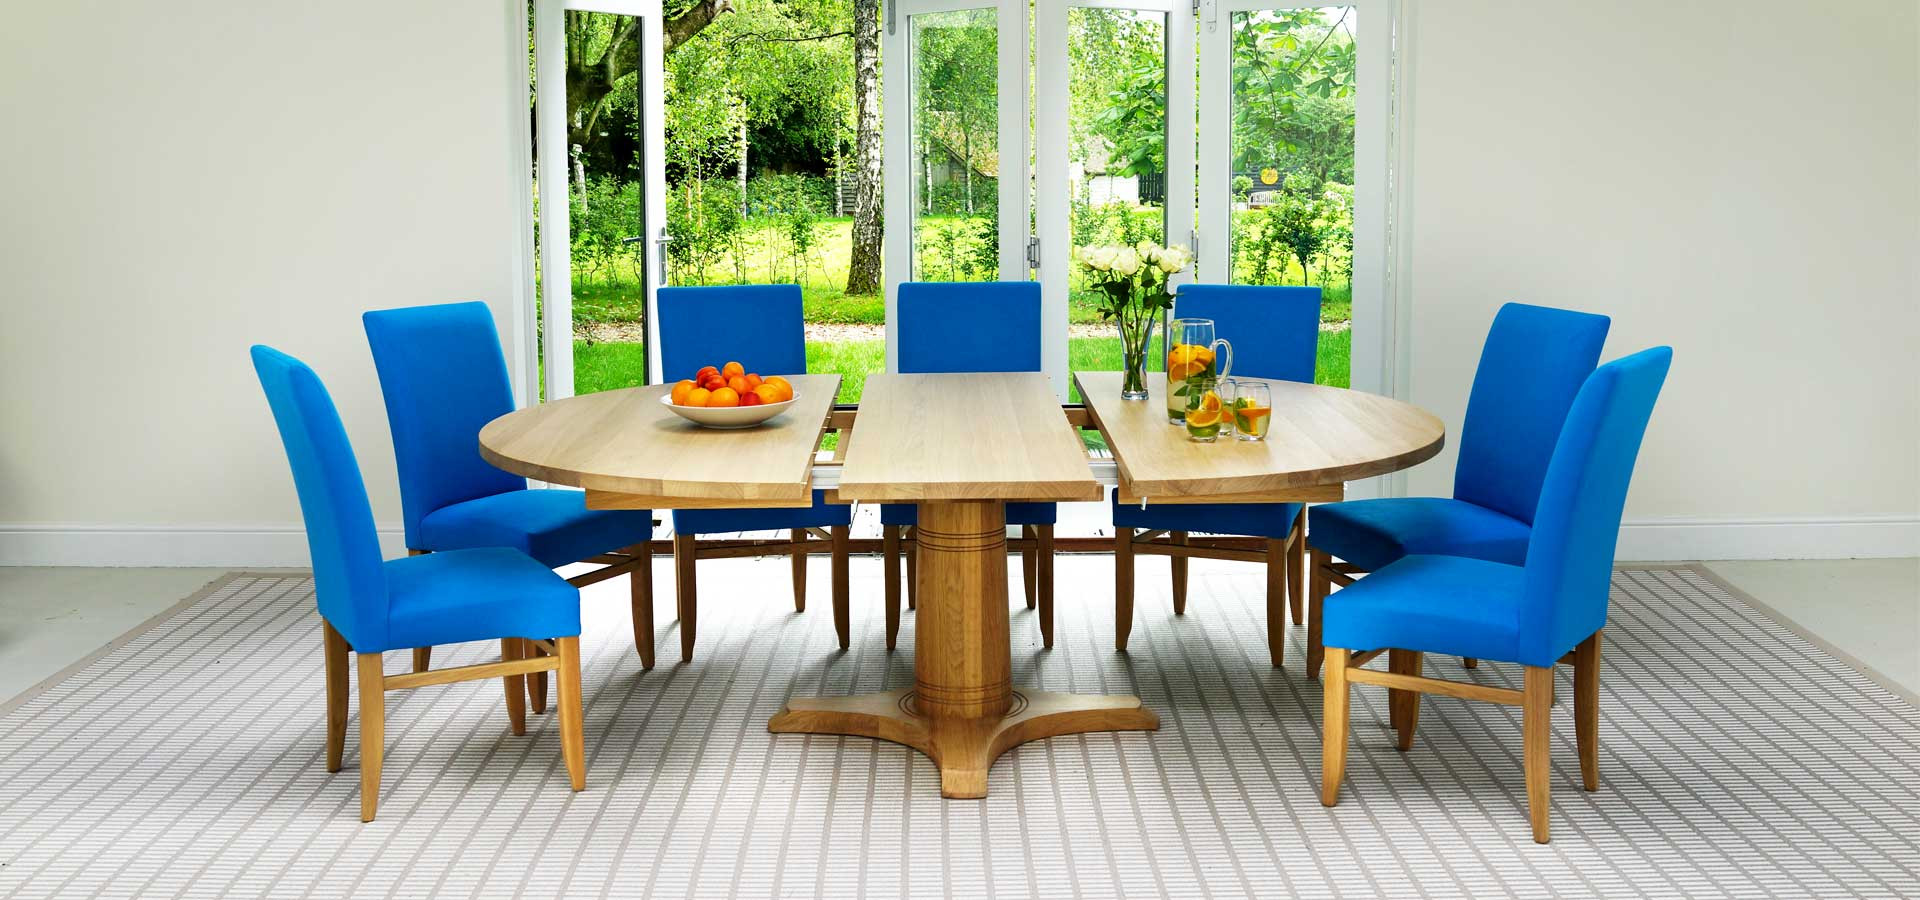 Best ideas about Round Extendable Dining Table . Save or Pin Contemporary Round Dining Table Now.